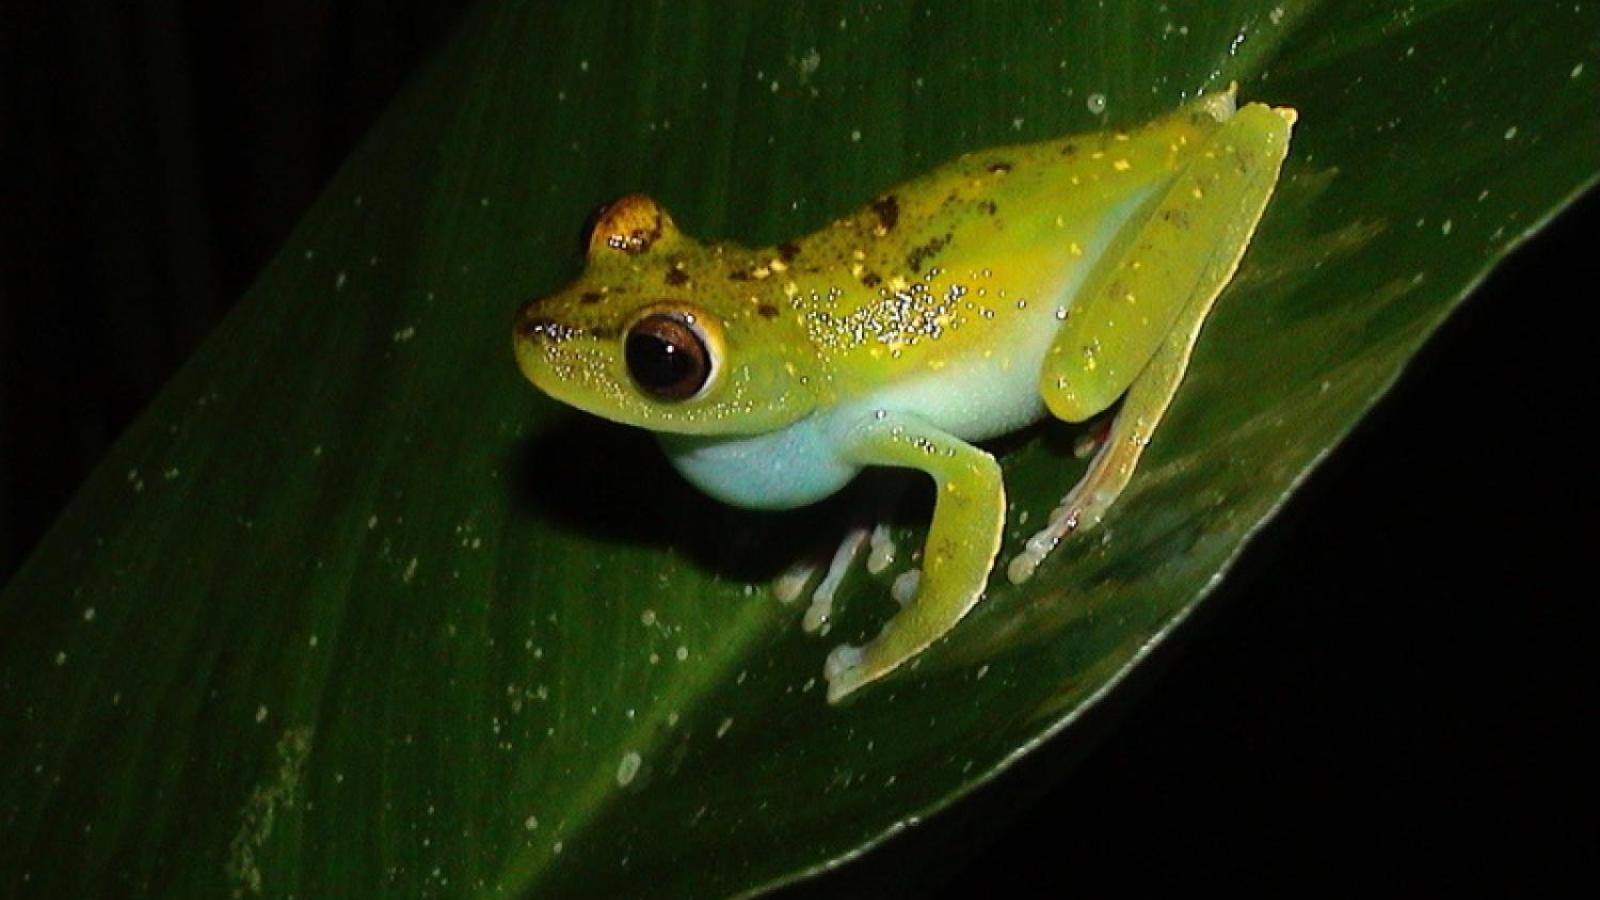 Hyla rufitela tree frog sits on a large green leaf